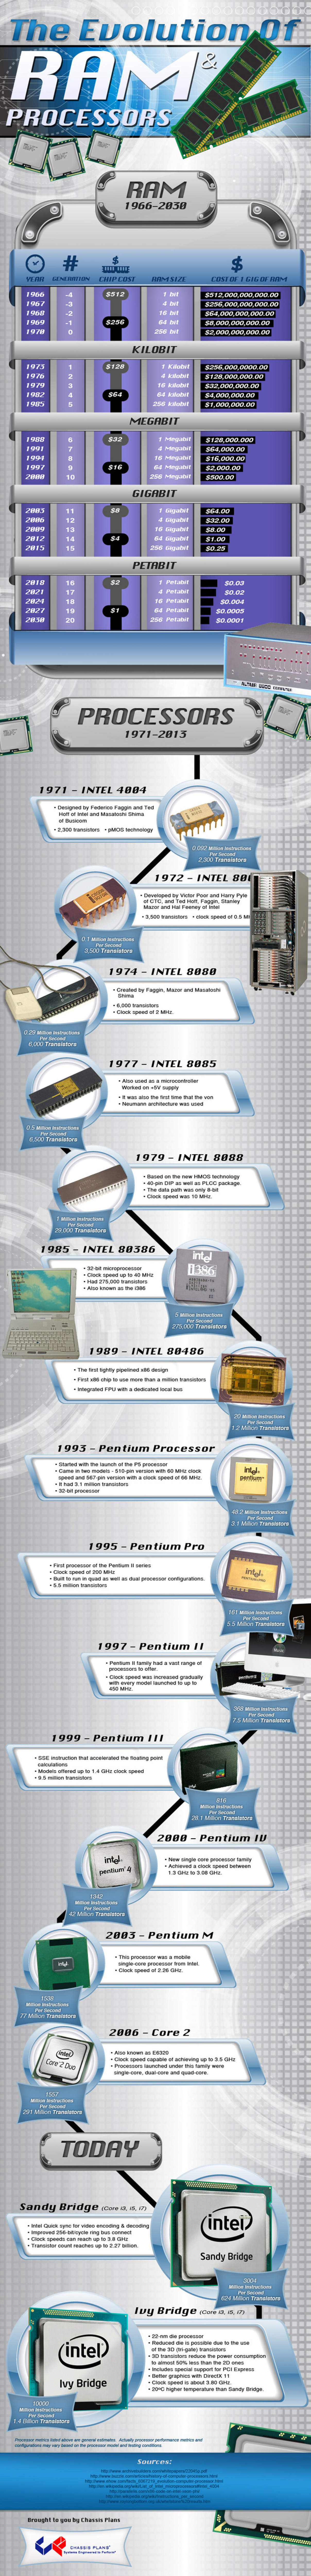 The Evolution of Ram & Processors Infographic